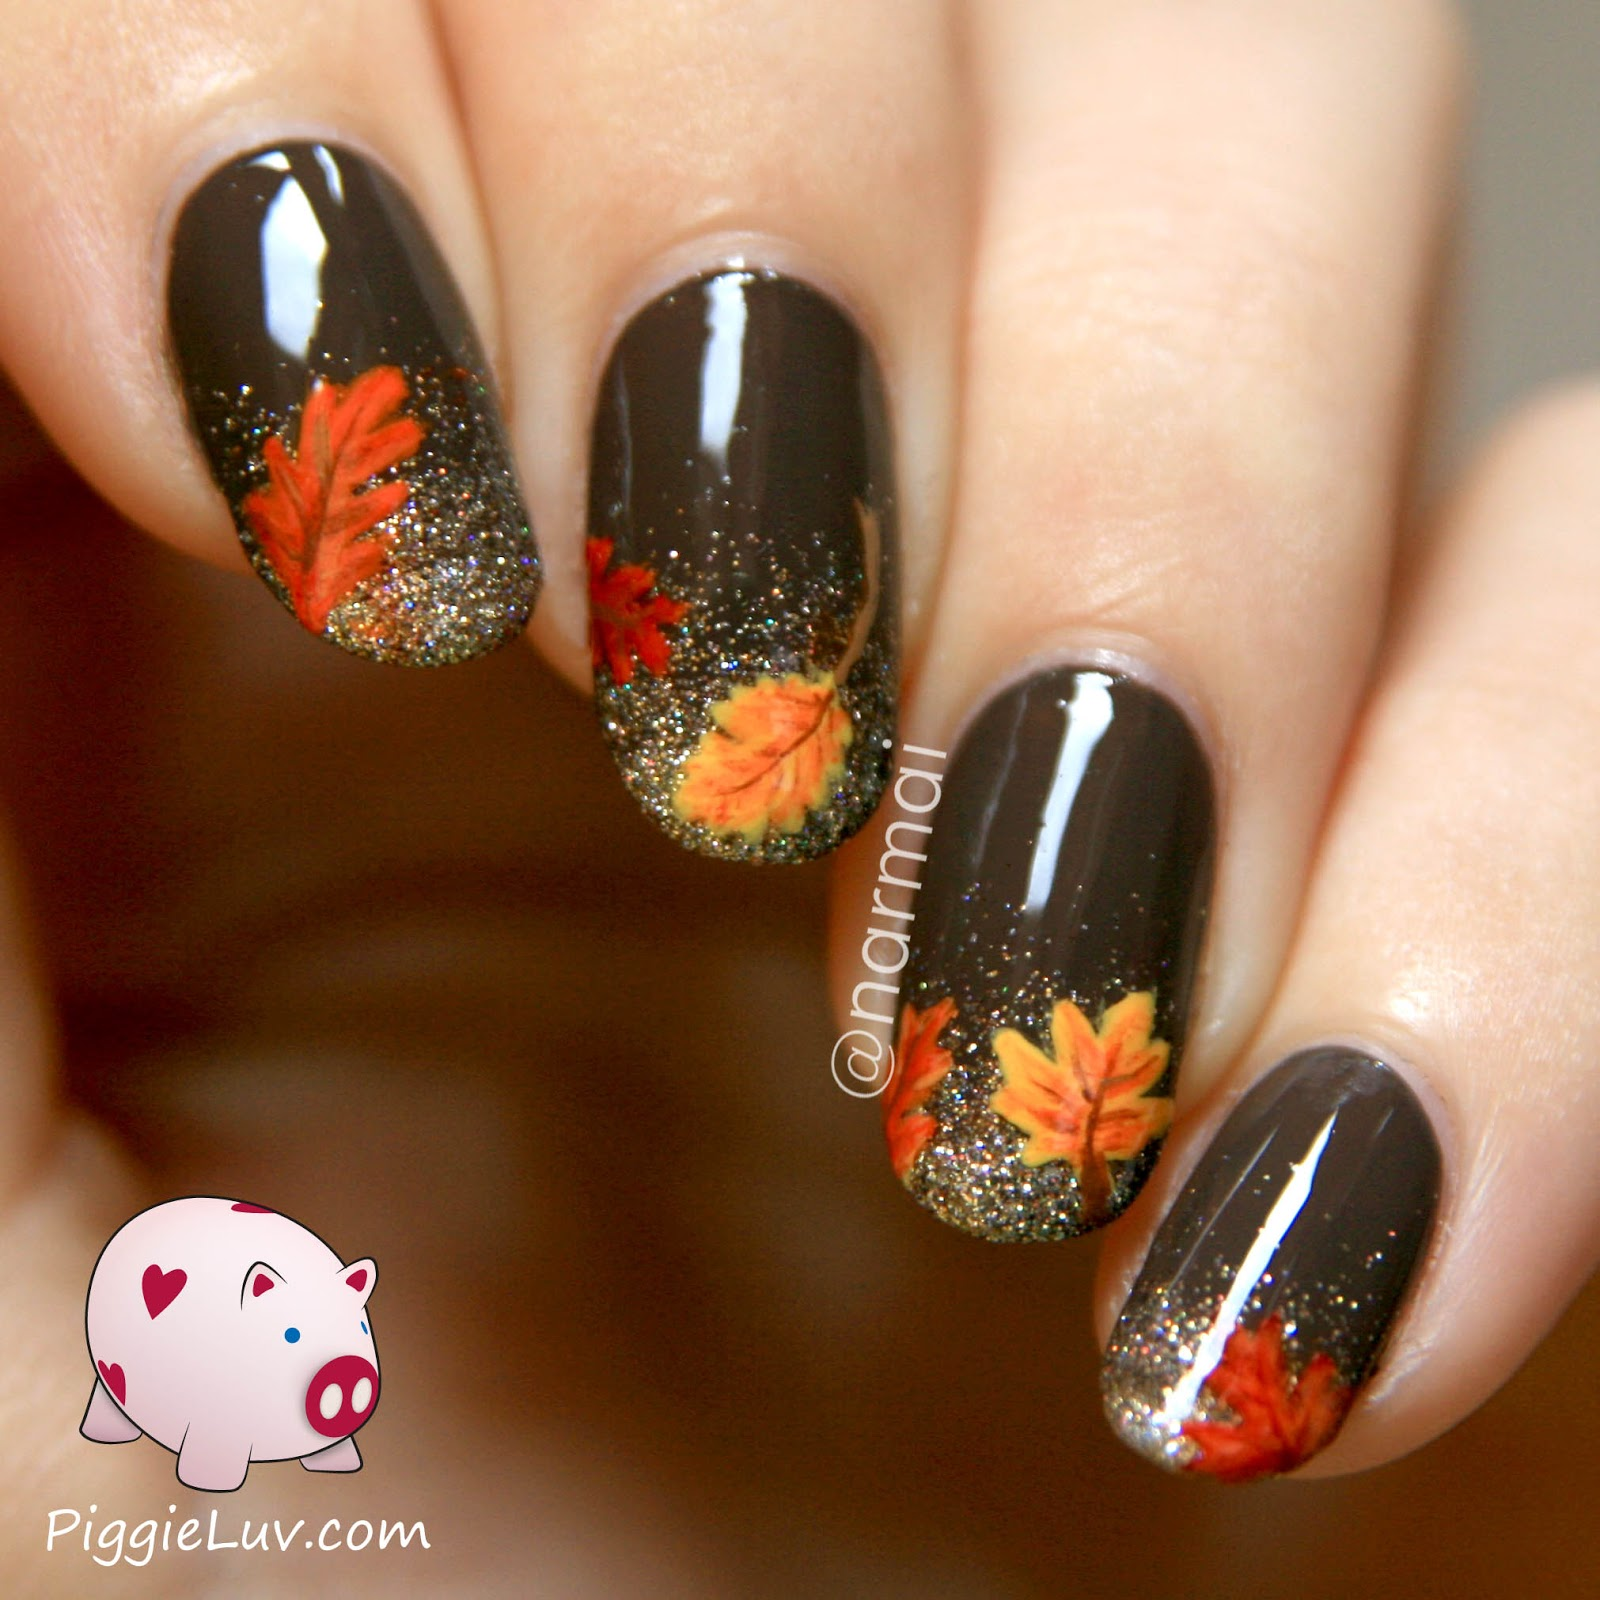 Brown Glossy Nails With Glitter And Autumn Leaves Nail Art